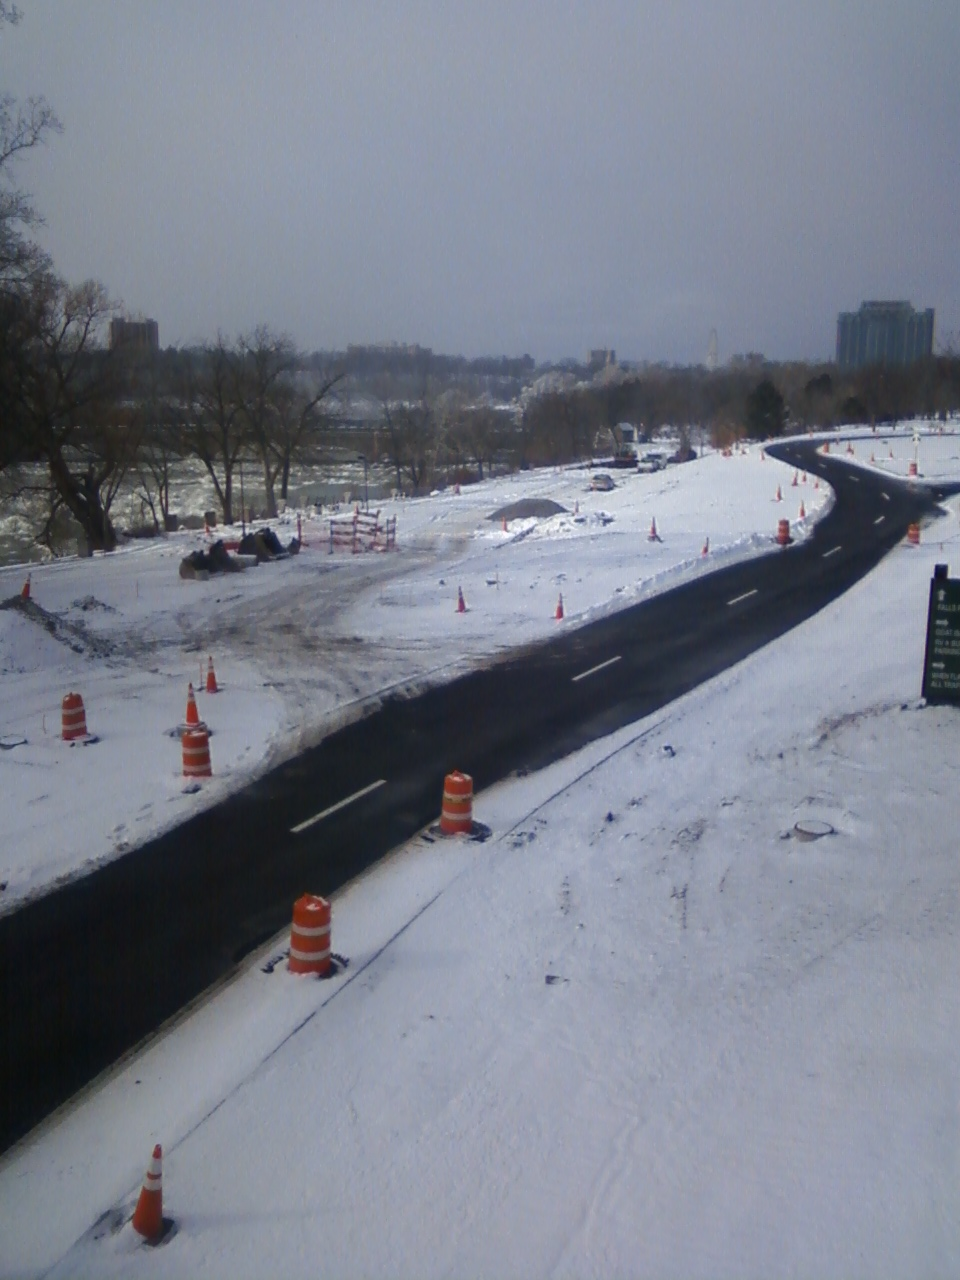 Parkway on its way into park